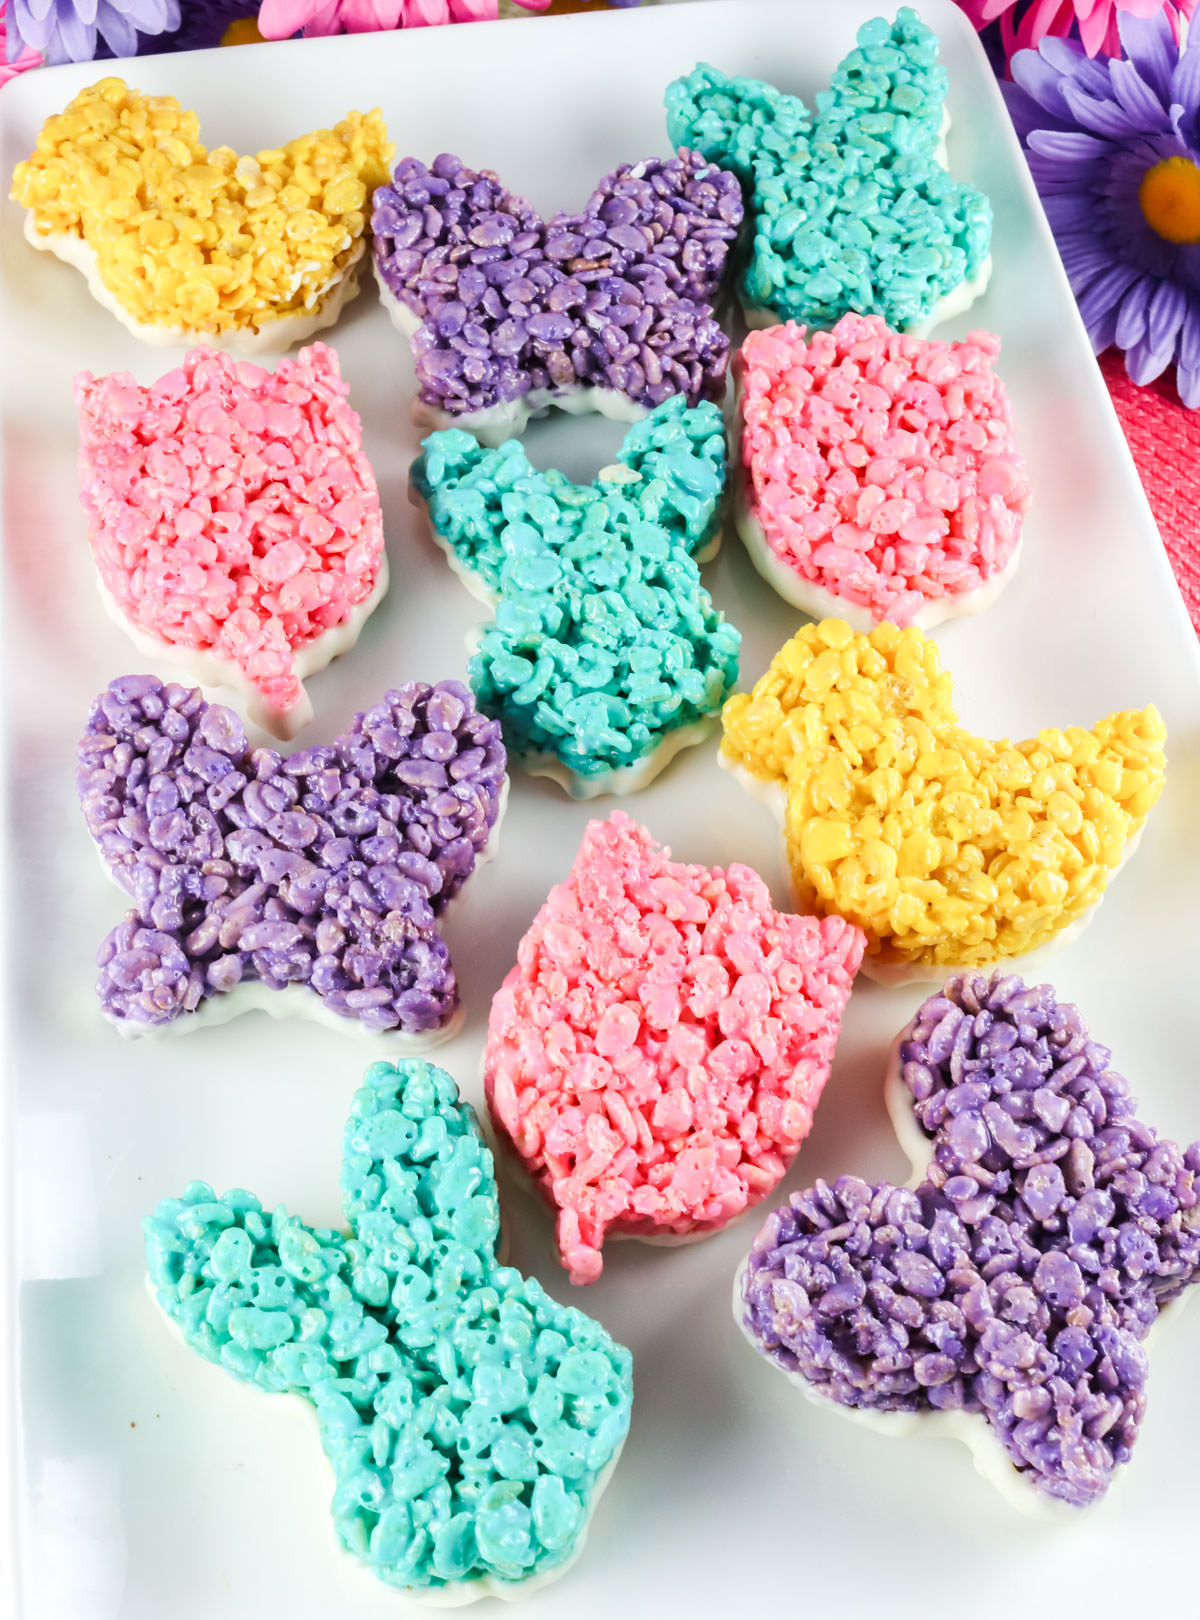 A large white platter covered with Blue, Purple, Pink and Yellow Rice Krispie Treats dipped in White Chocolate surrounded by pink and purple decorative daisies.